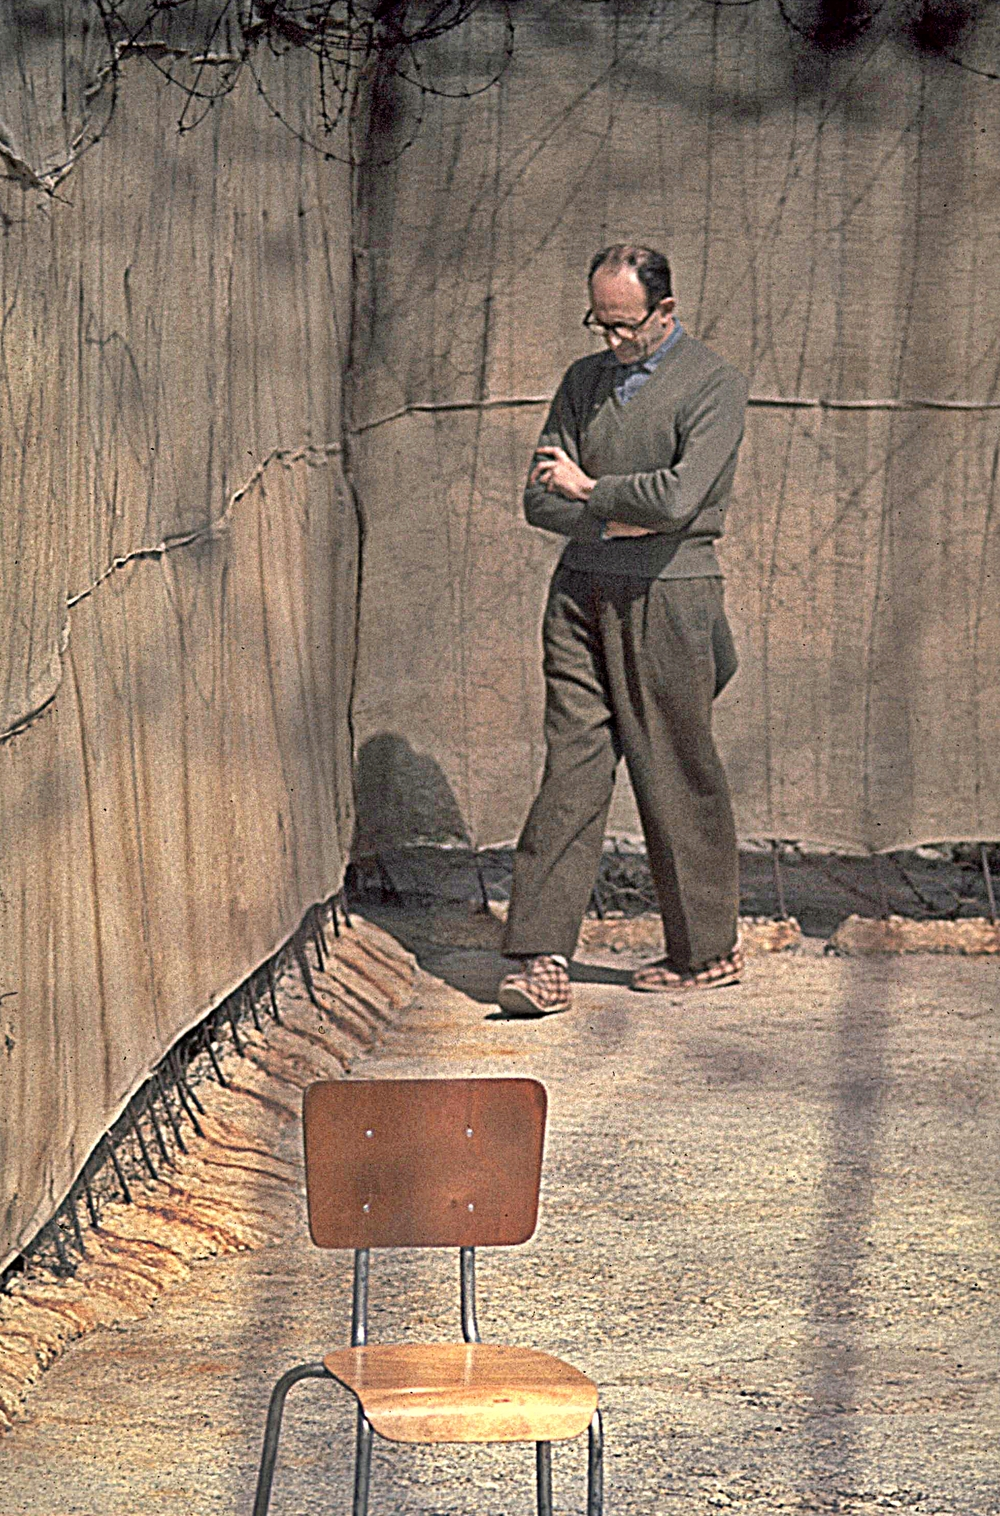 Nazi war criminal Adolf Eichman walks in the yard of his cell in Israel's Ayalon Prison in April 1961. Credit: Israeli Government Press Office.